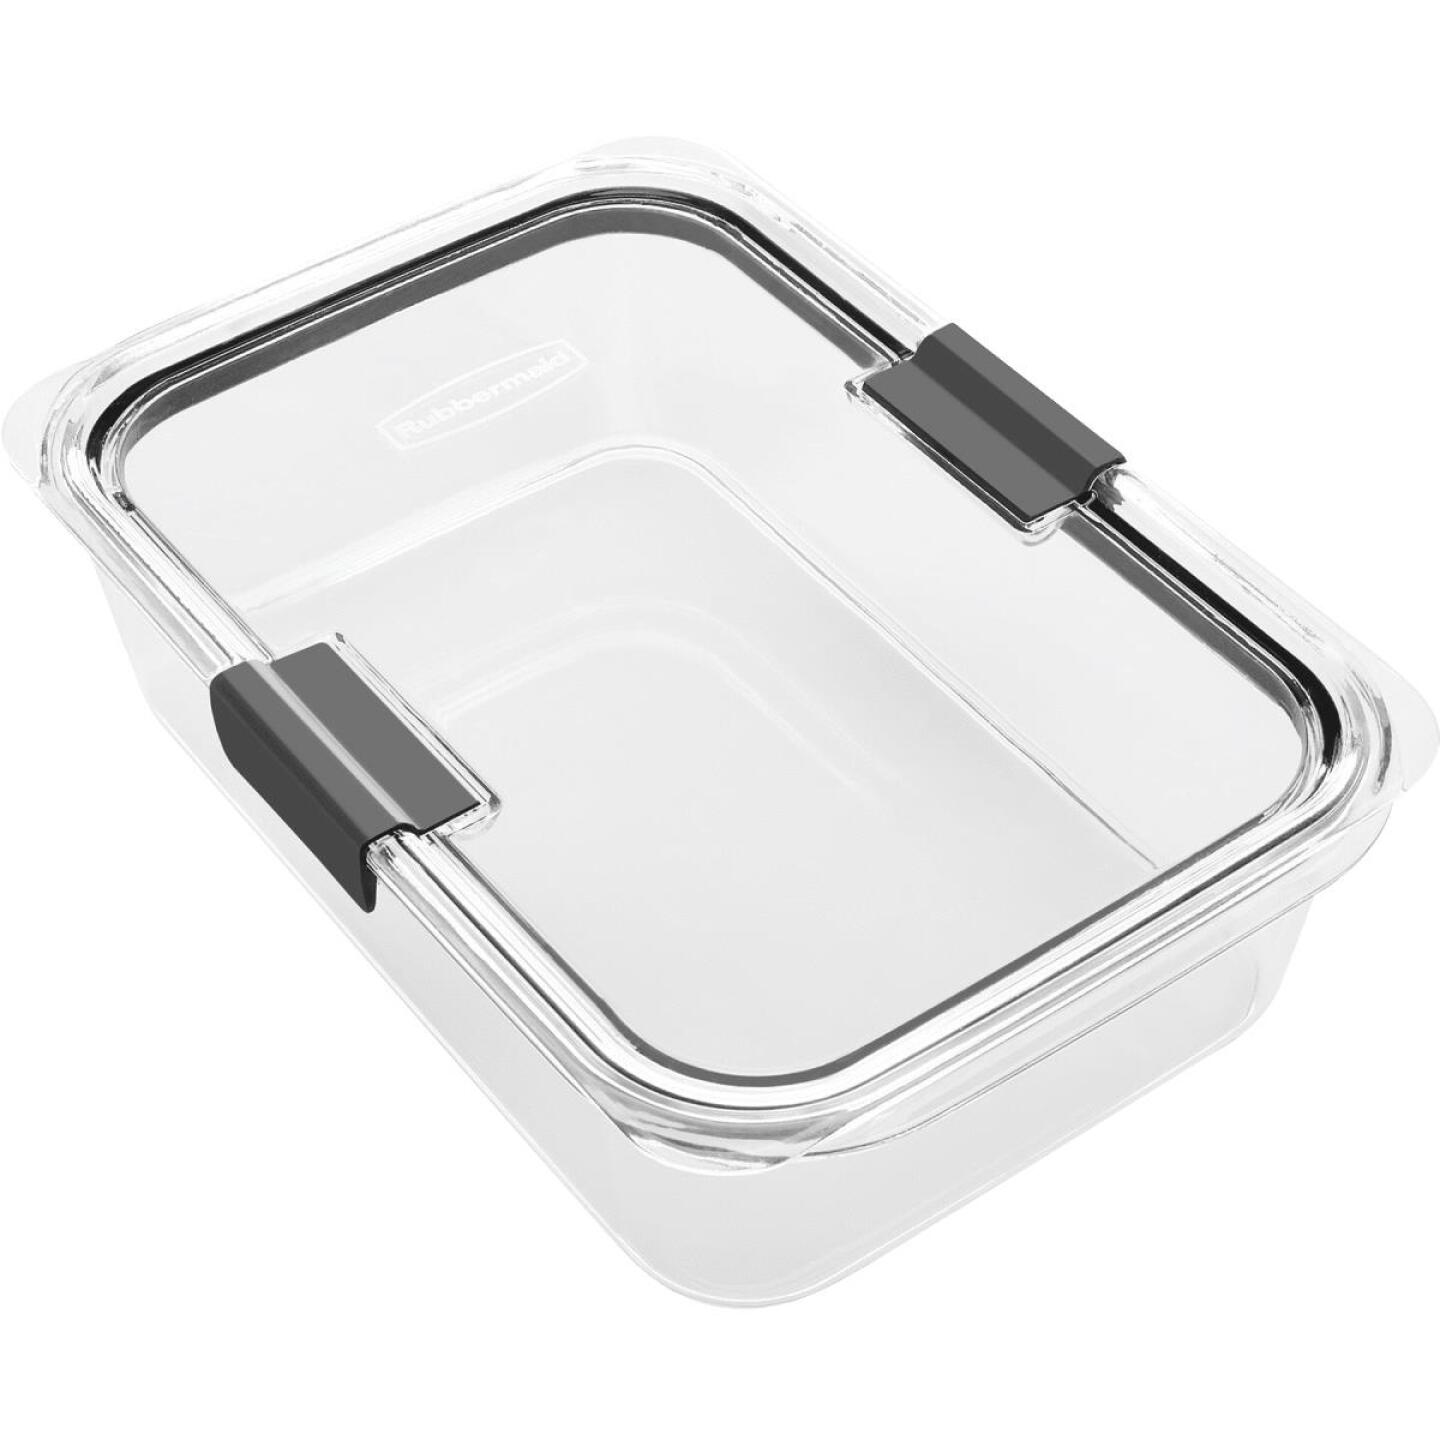 Rubbermaid Brilliance 9.6 C. Clear Rectangle Food Storage Container Image 1